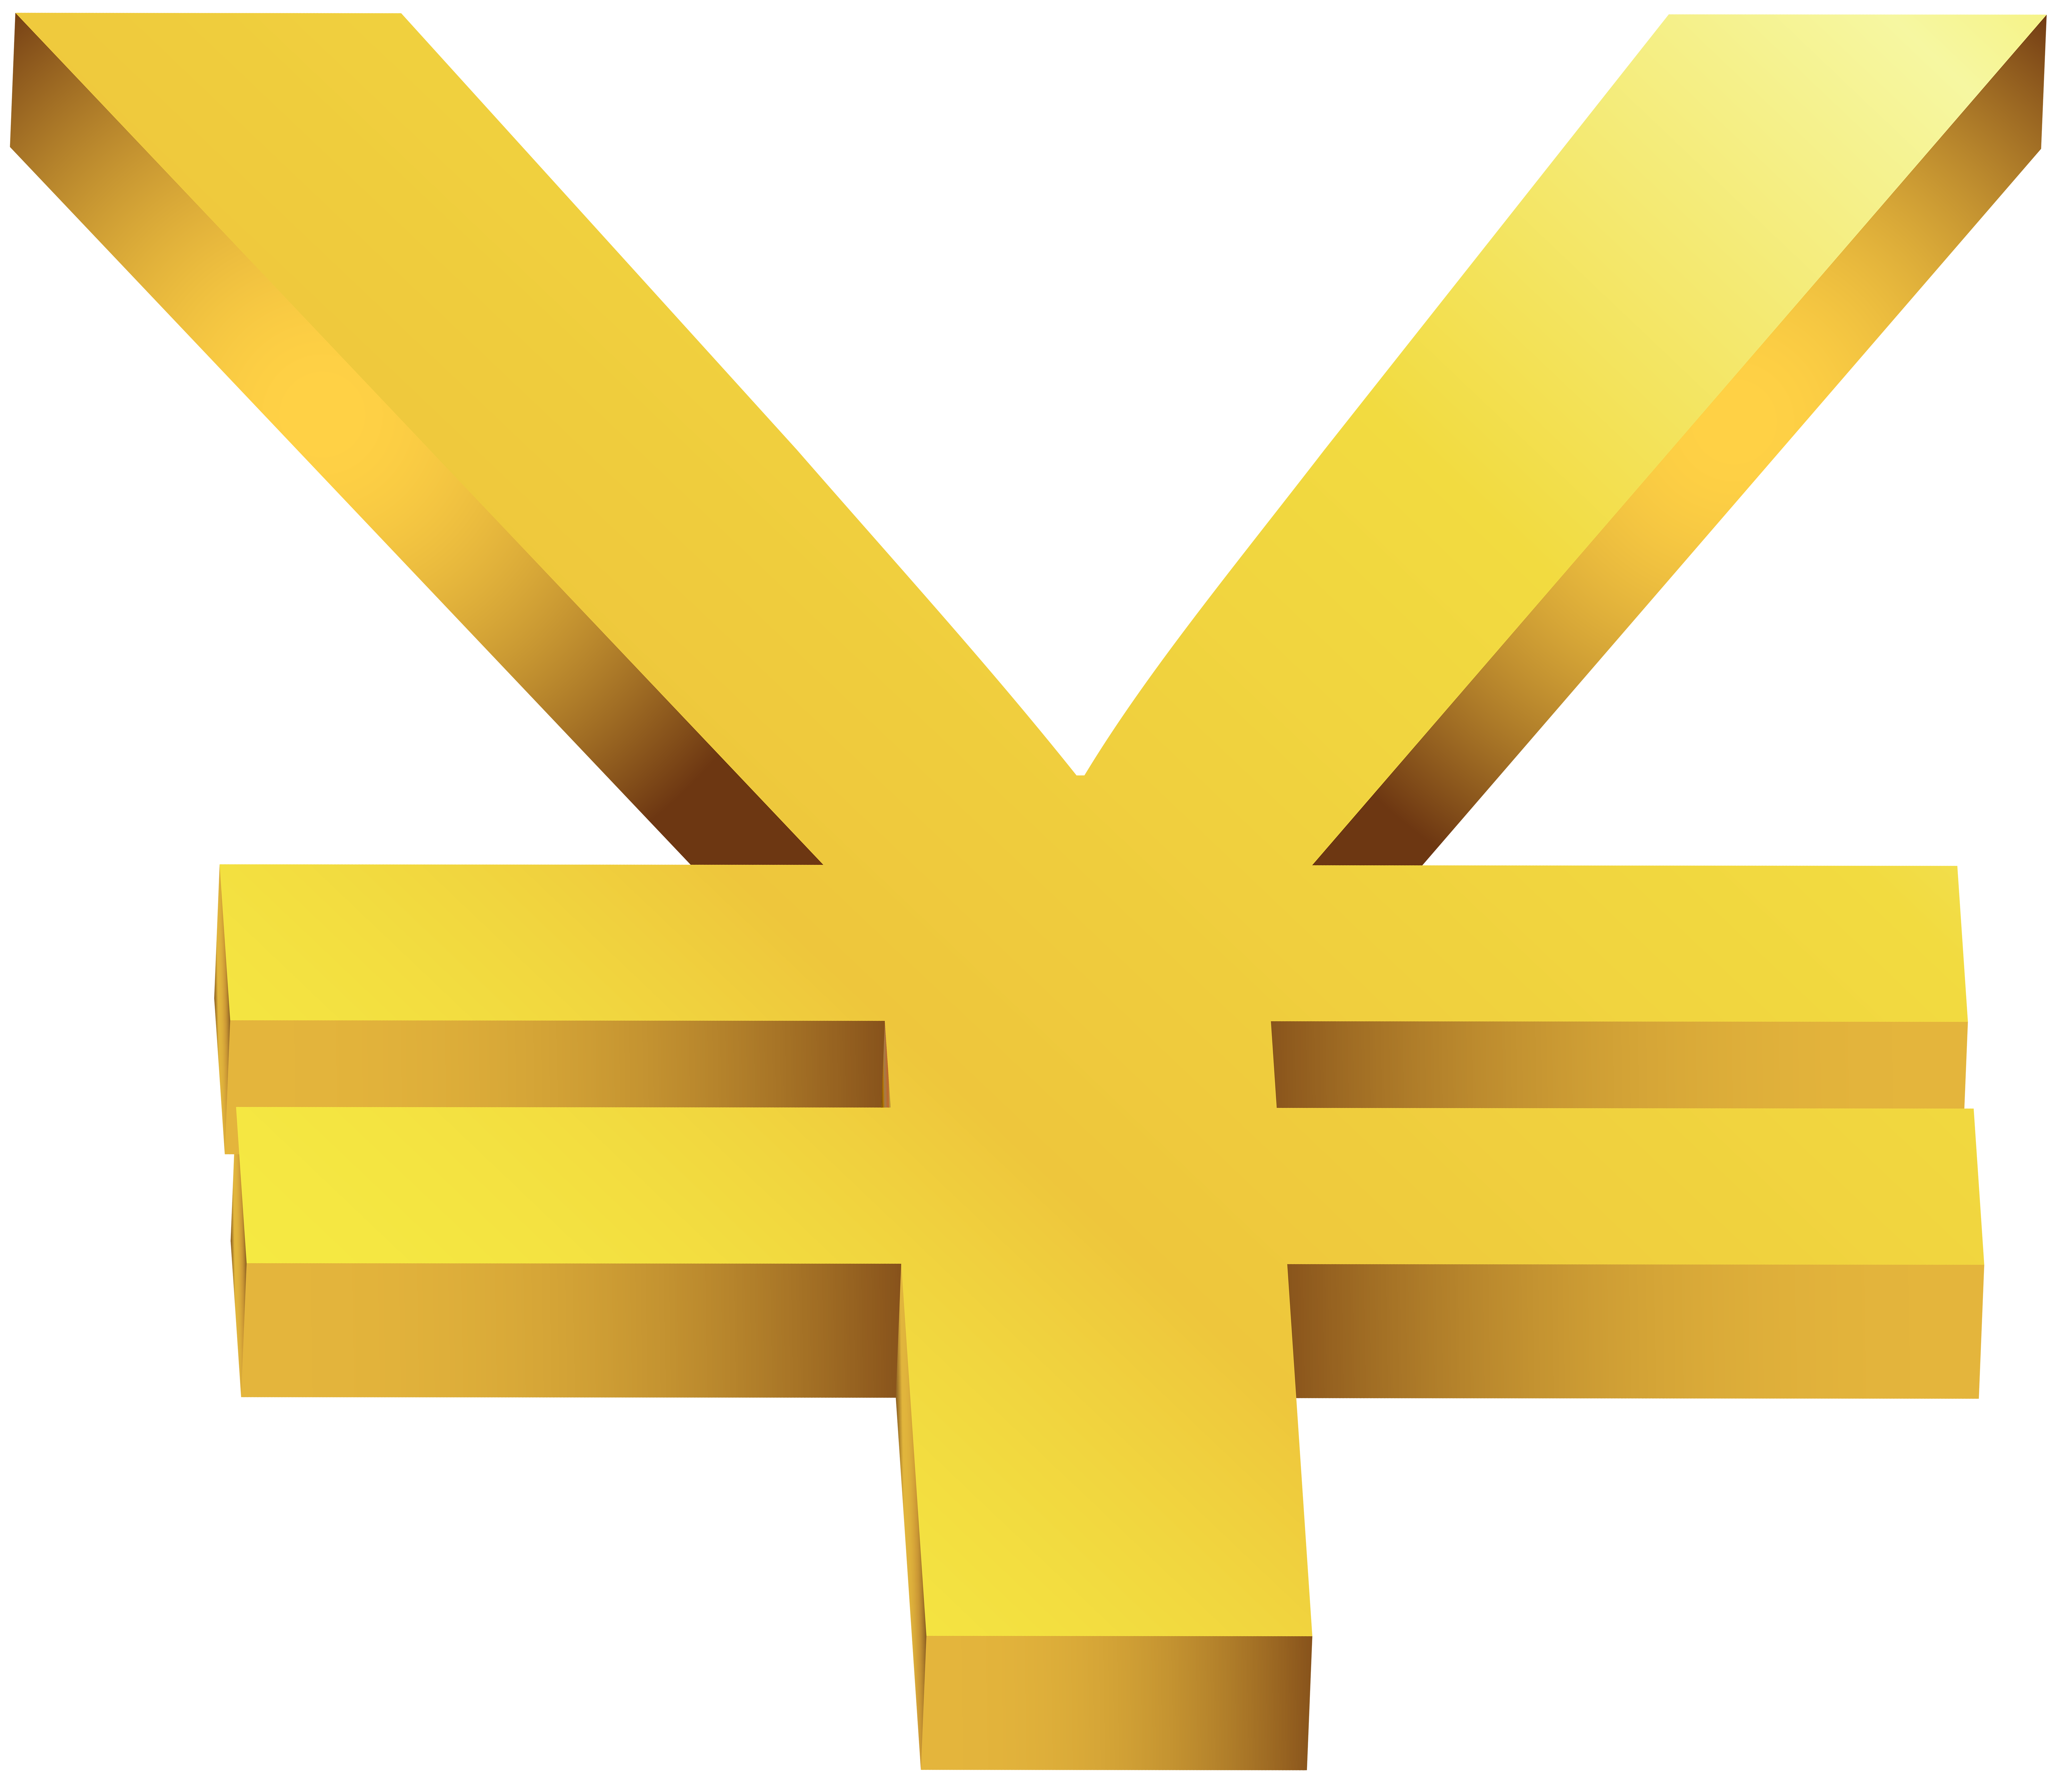 Gold Japanese Yen Transparent PNG Clip Art Image | Gallery ... image free